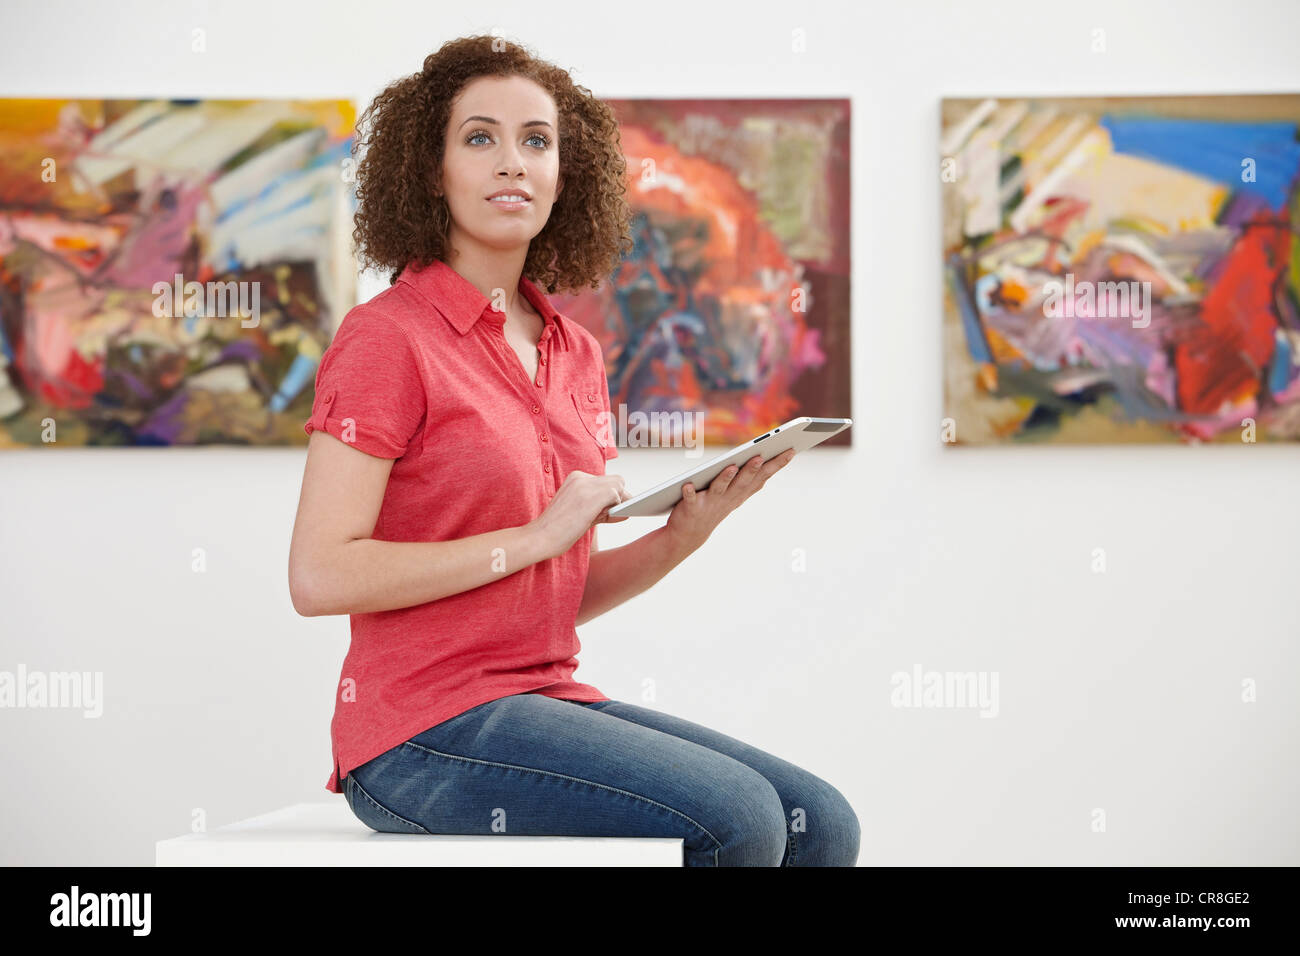 Young woman using digital tablet in art gallery - Stock Image